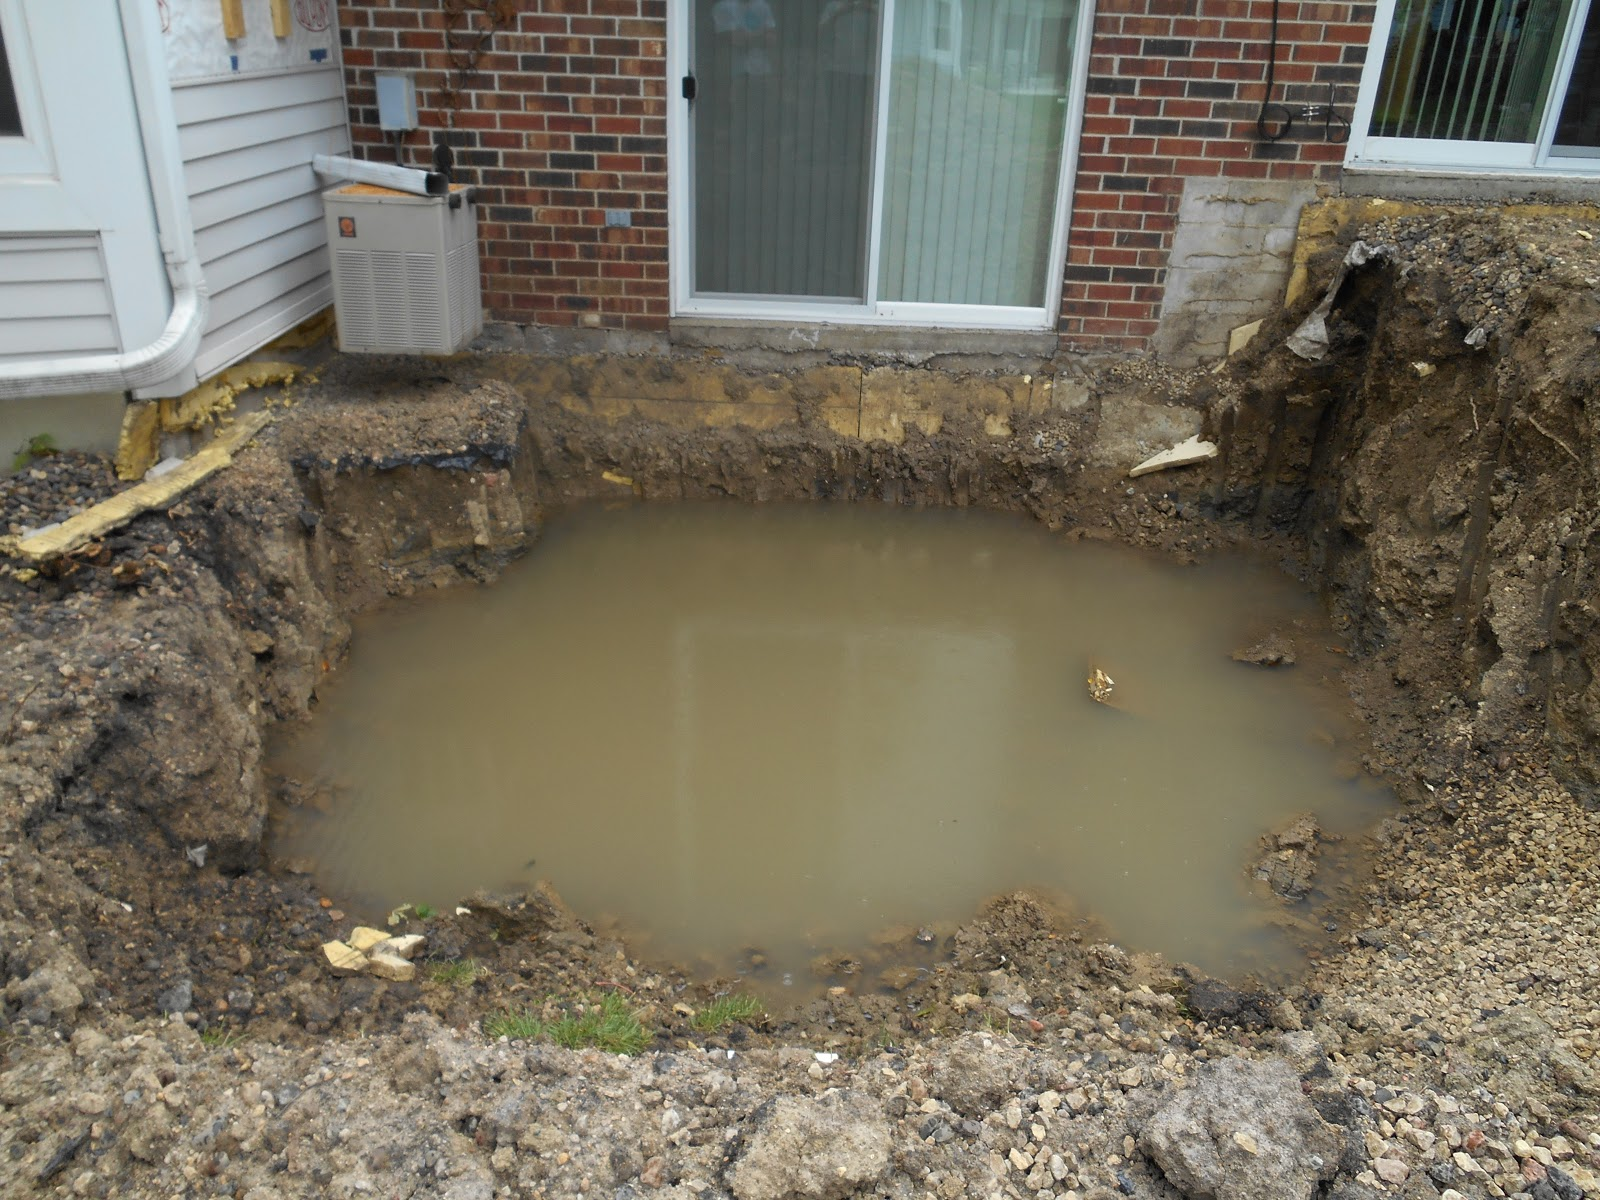 Large amounts of water found in soils surrounding foundation